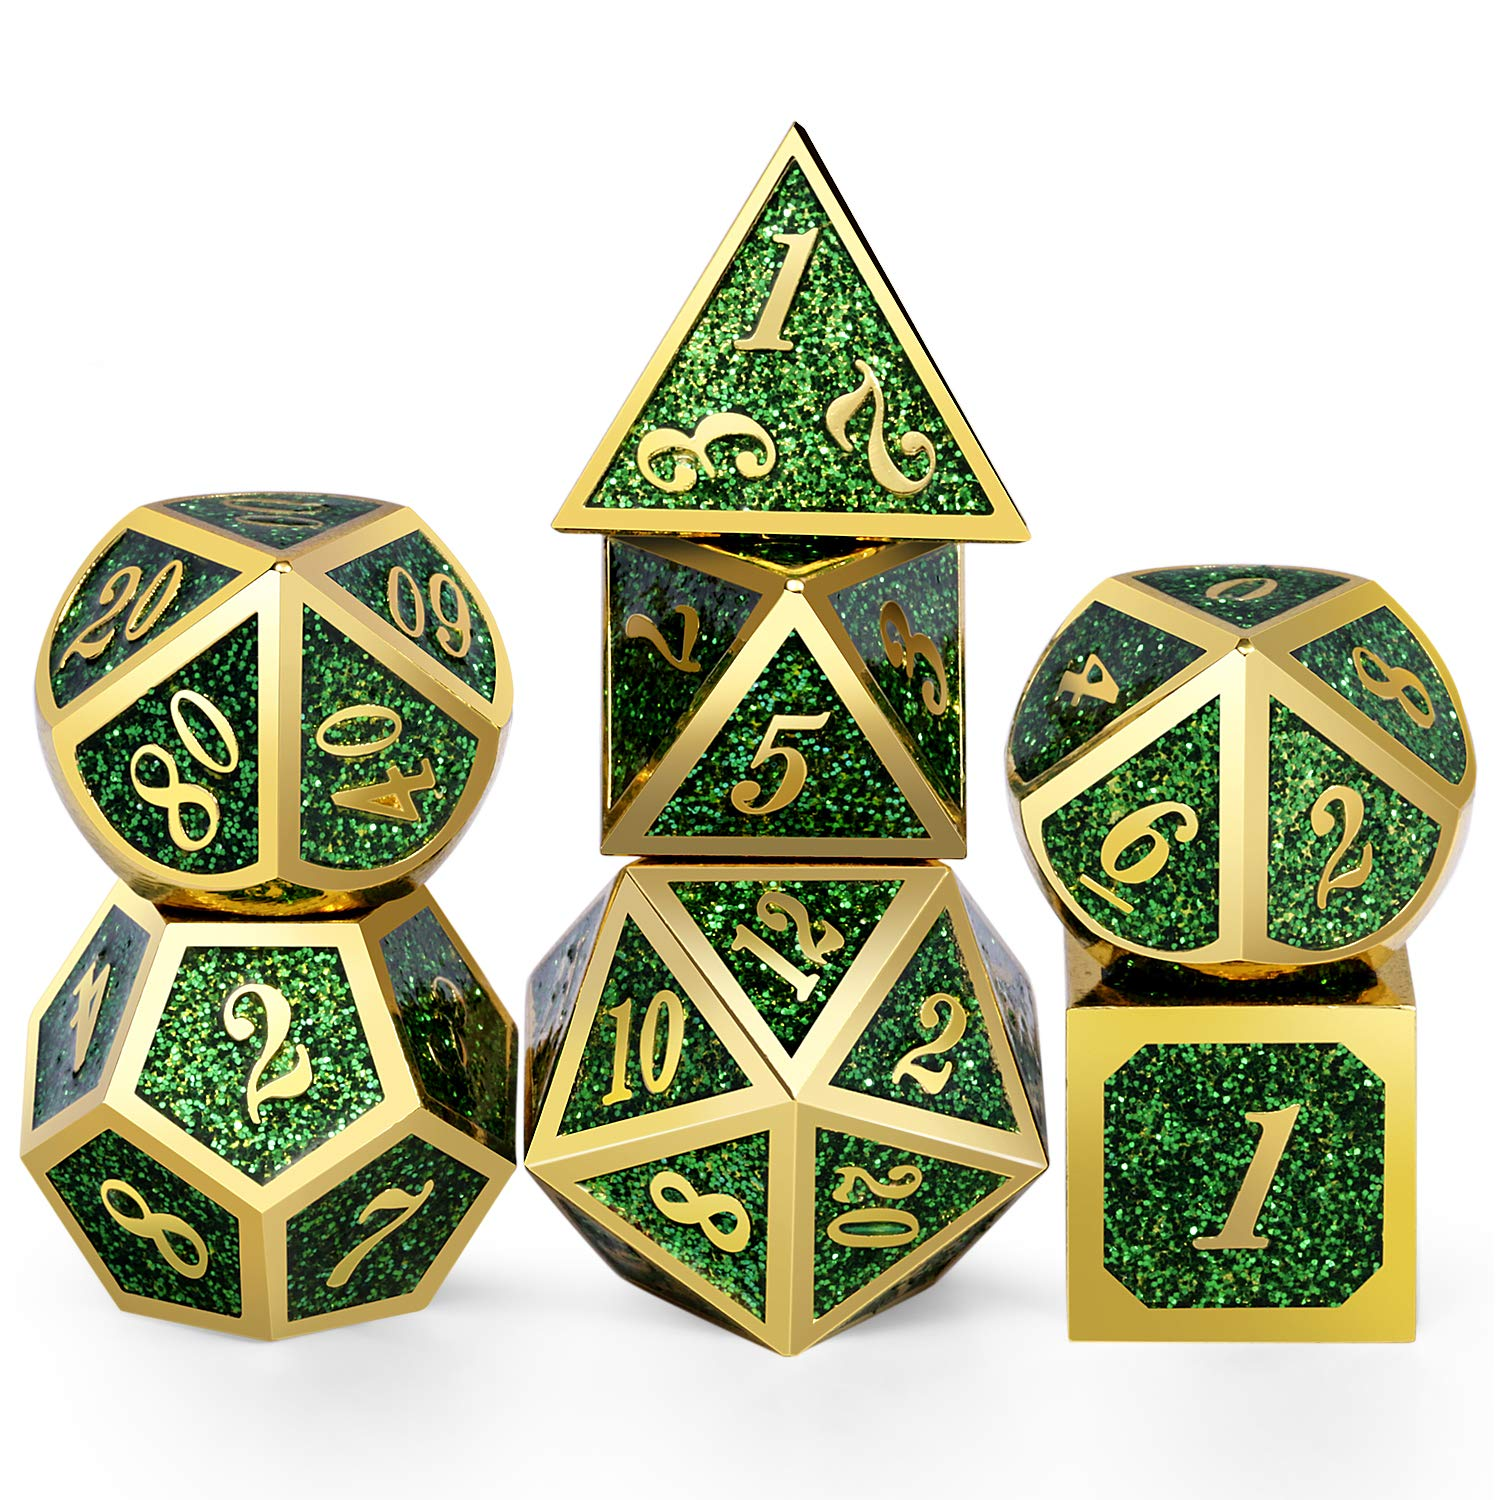 DNDND Metal Dice Set D&D,Glitter Green Heavy DND Dice with Free Metal Case for Role Playing Games Dungeons and Dragons by DNDND